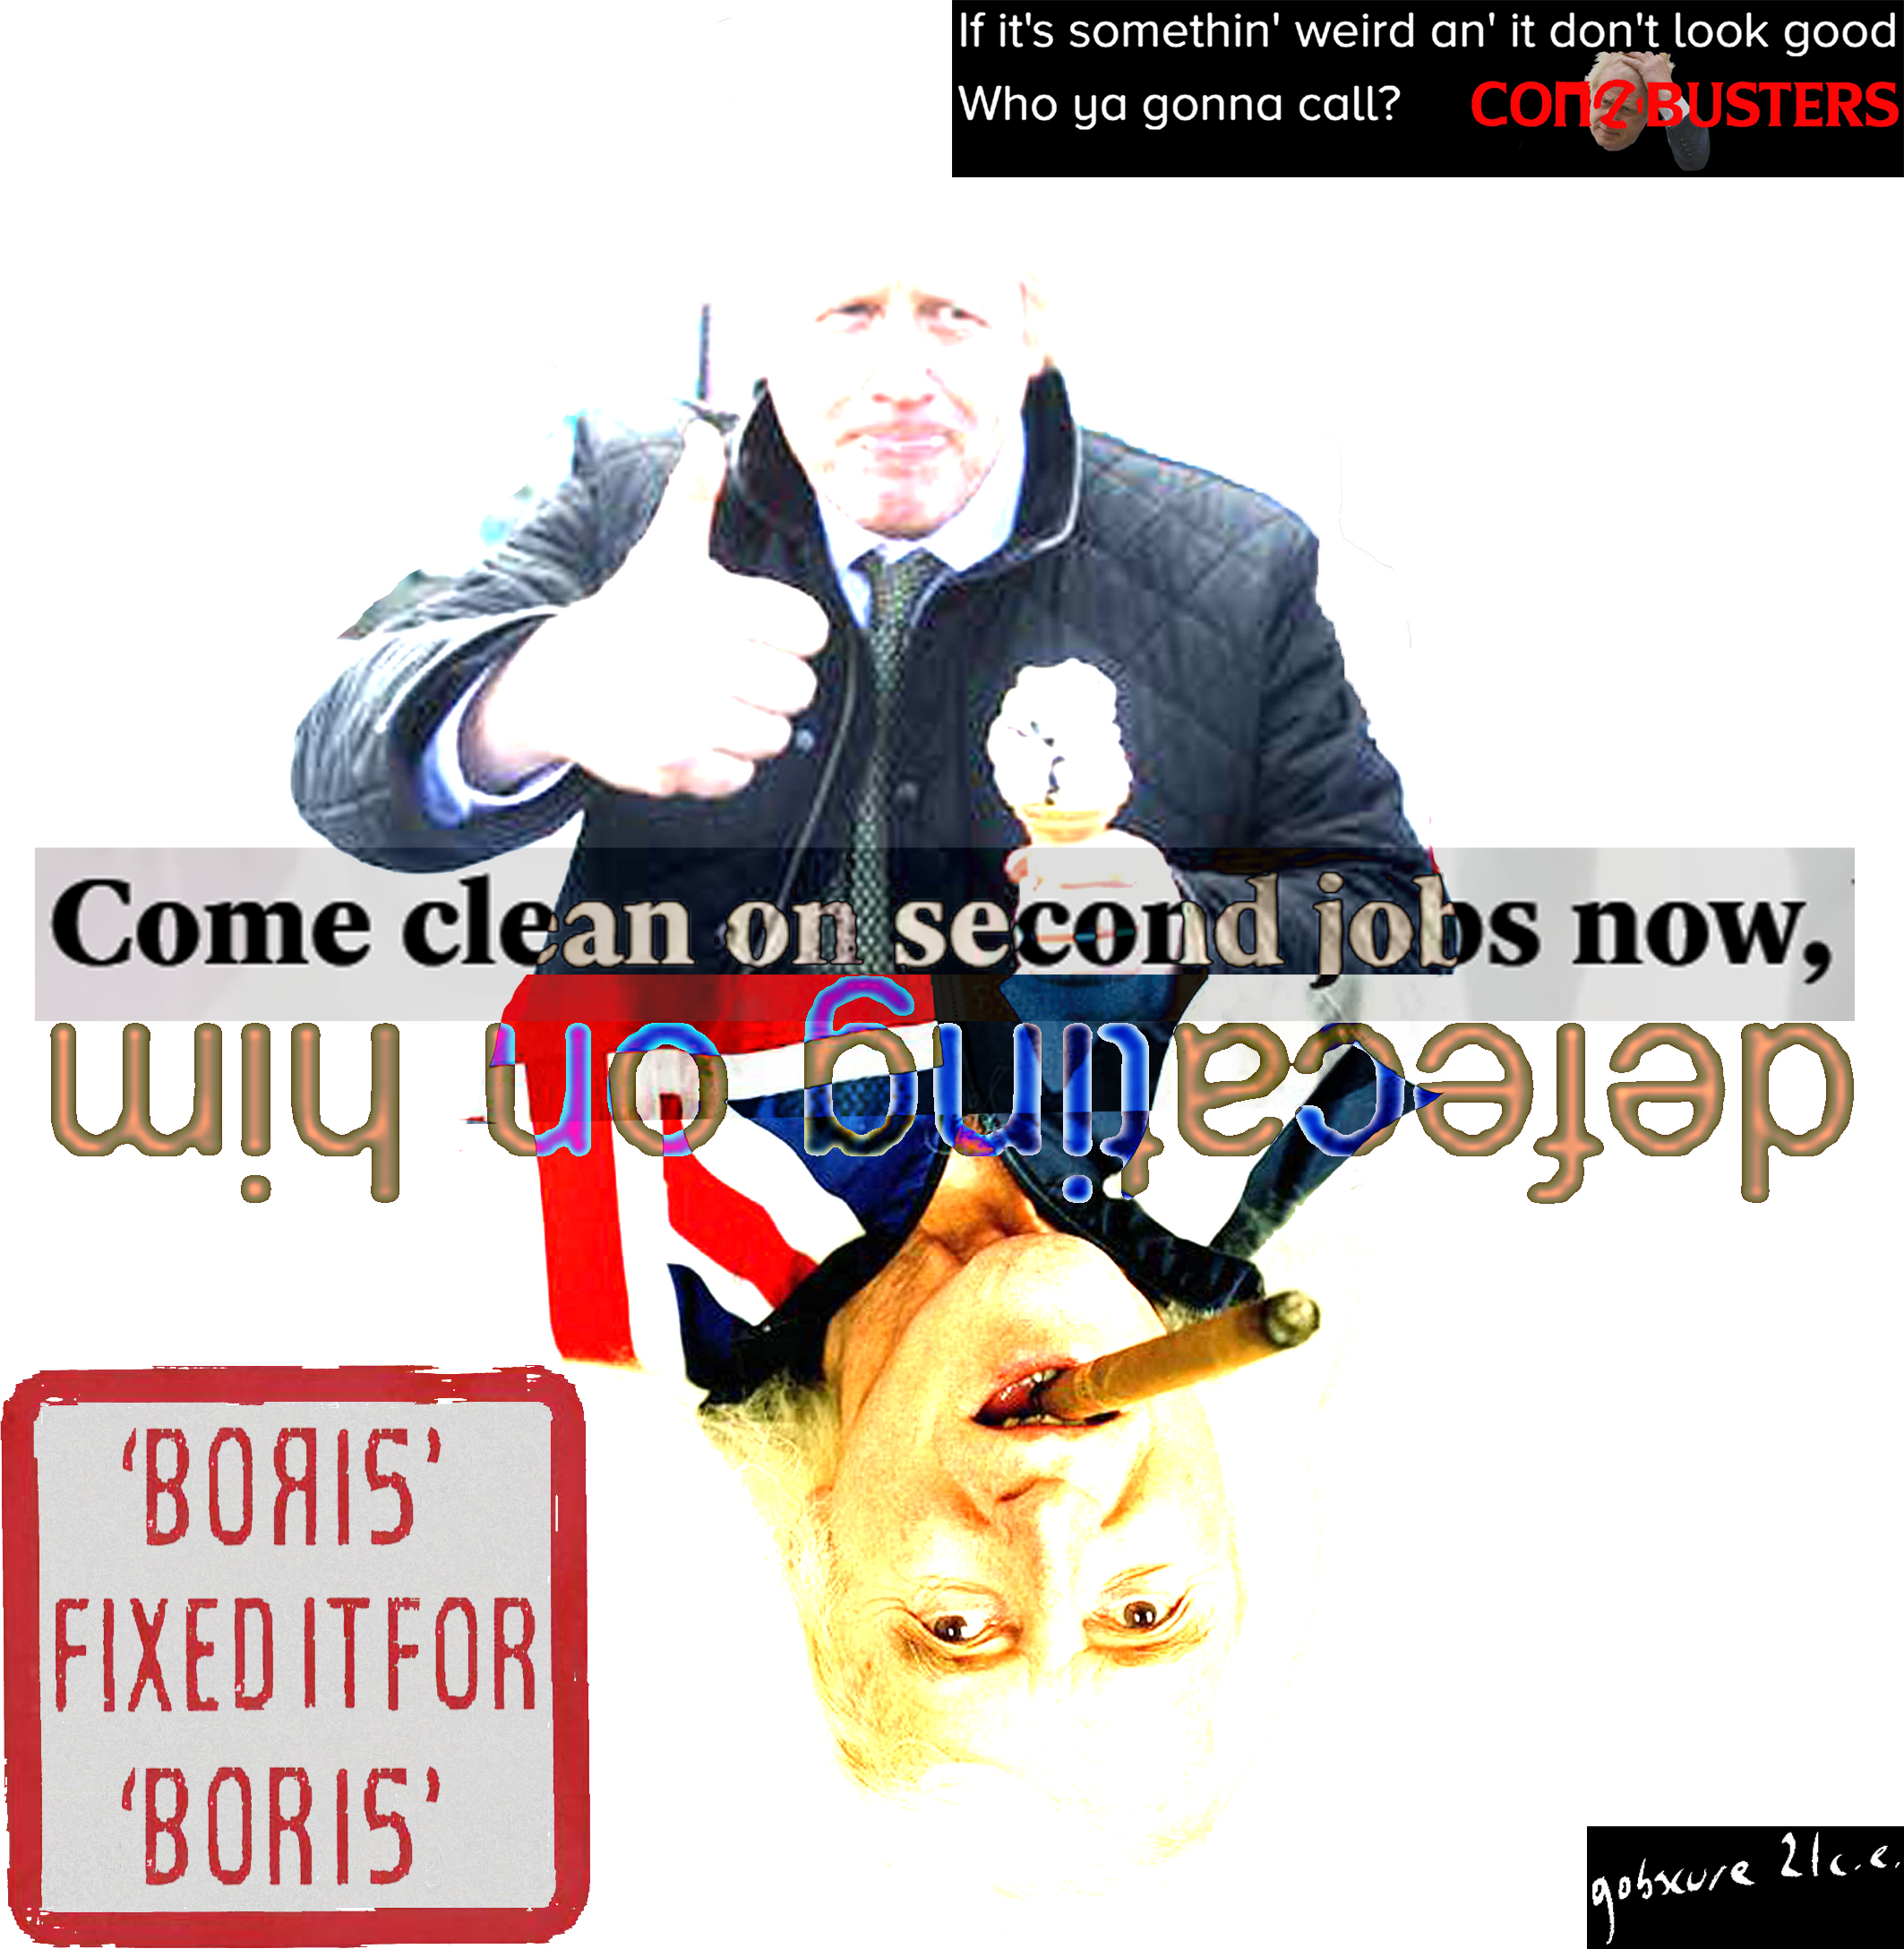 Satirical collage showing Boris Johnson and Jimmy Saville which says Boris Fixed it for Boris